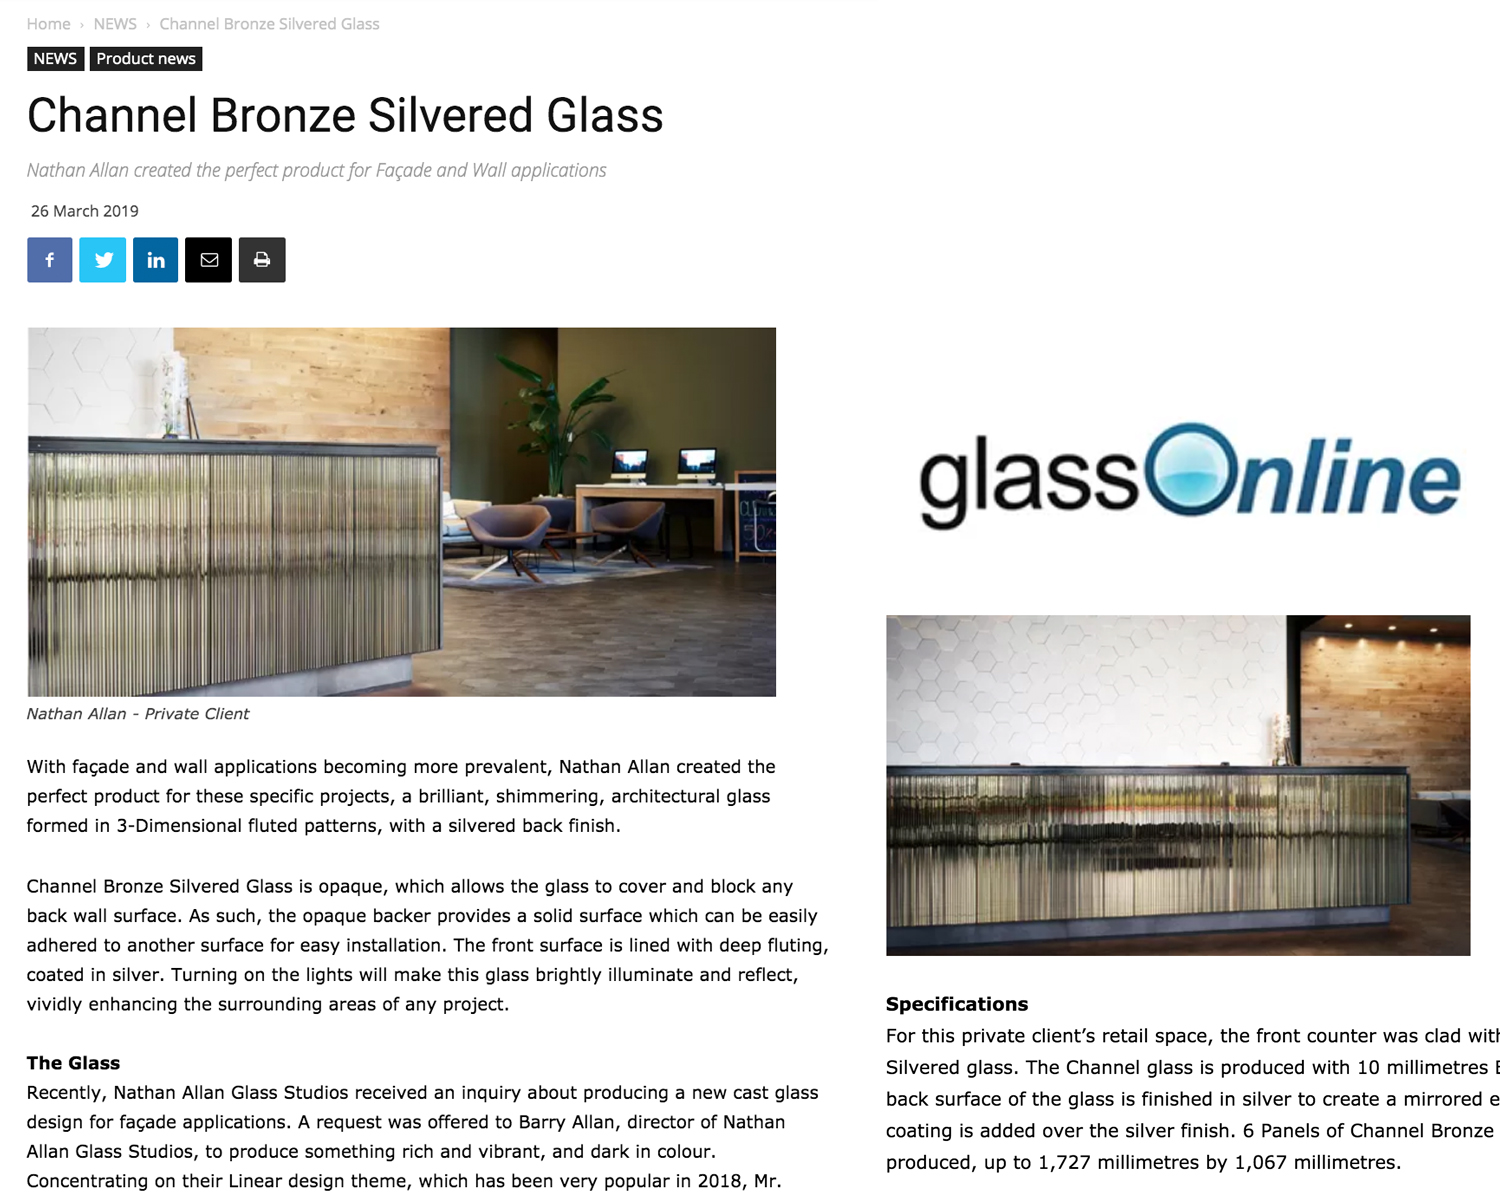 Glass Online | Channel Bronze Silvered Glass